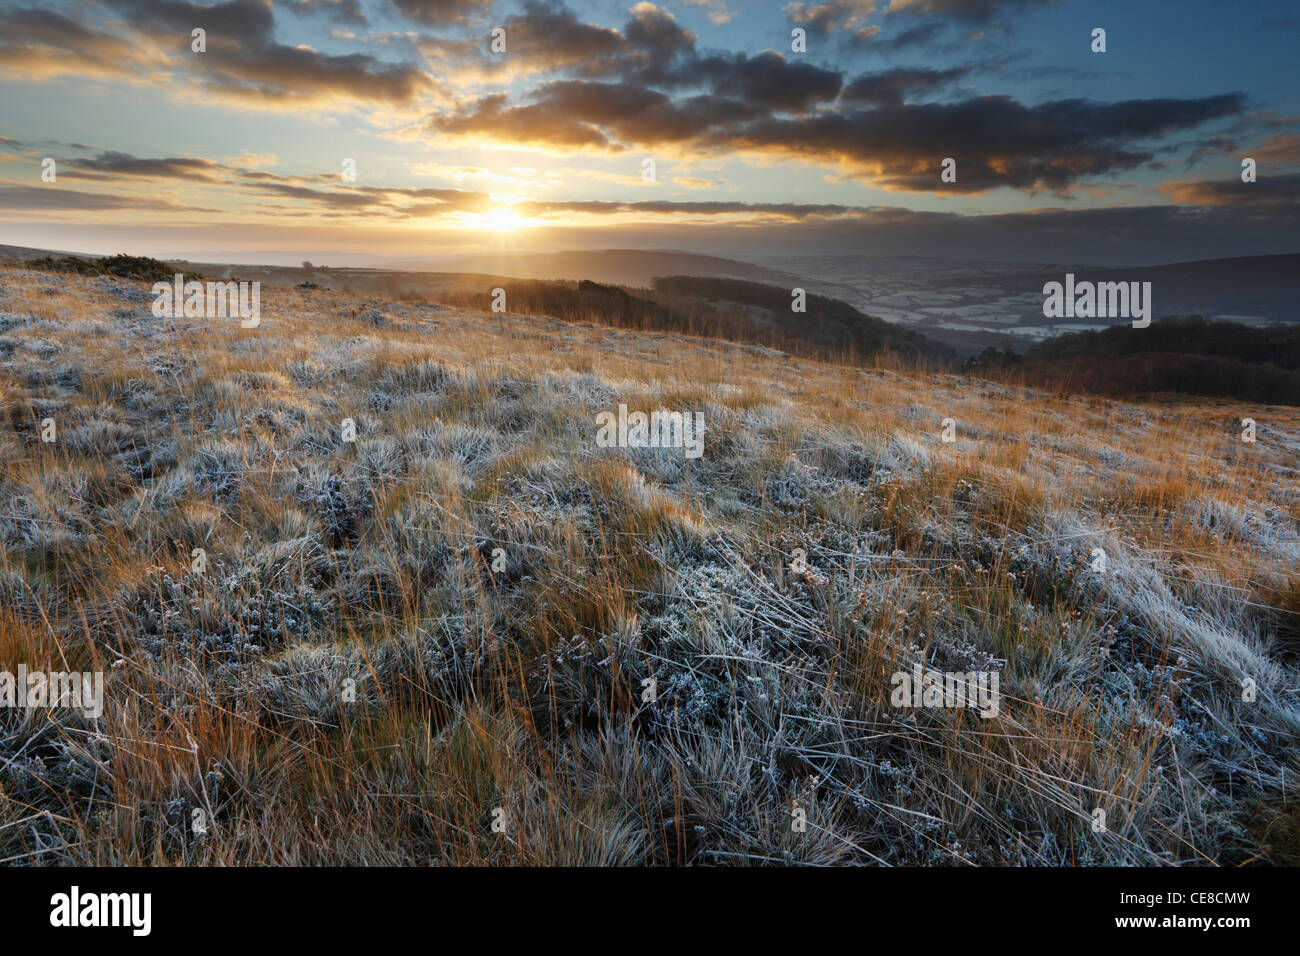 Balise Selworthy, hiver le lever du soleil. Holnicote Estate. Parc National d'Exmoor. L'Angleterre. UK. Photo Stock